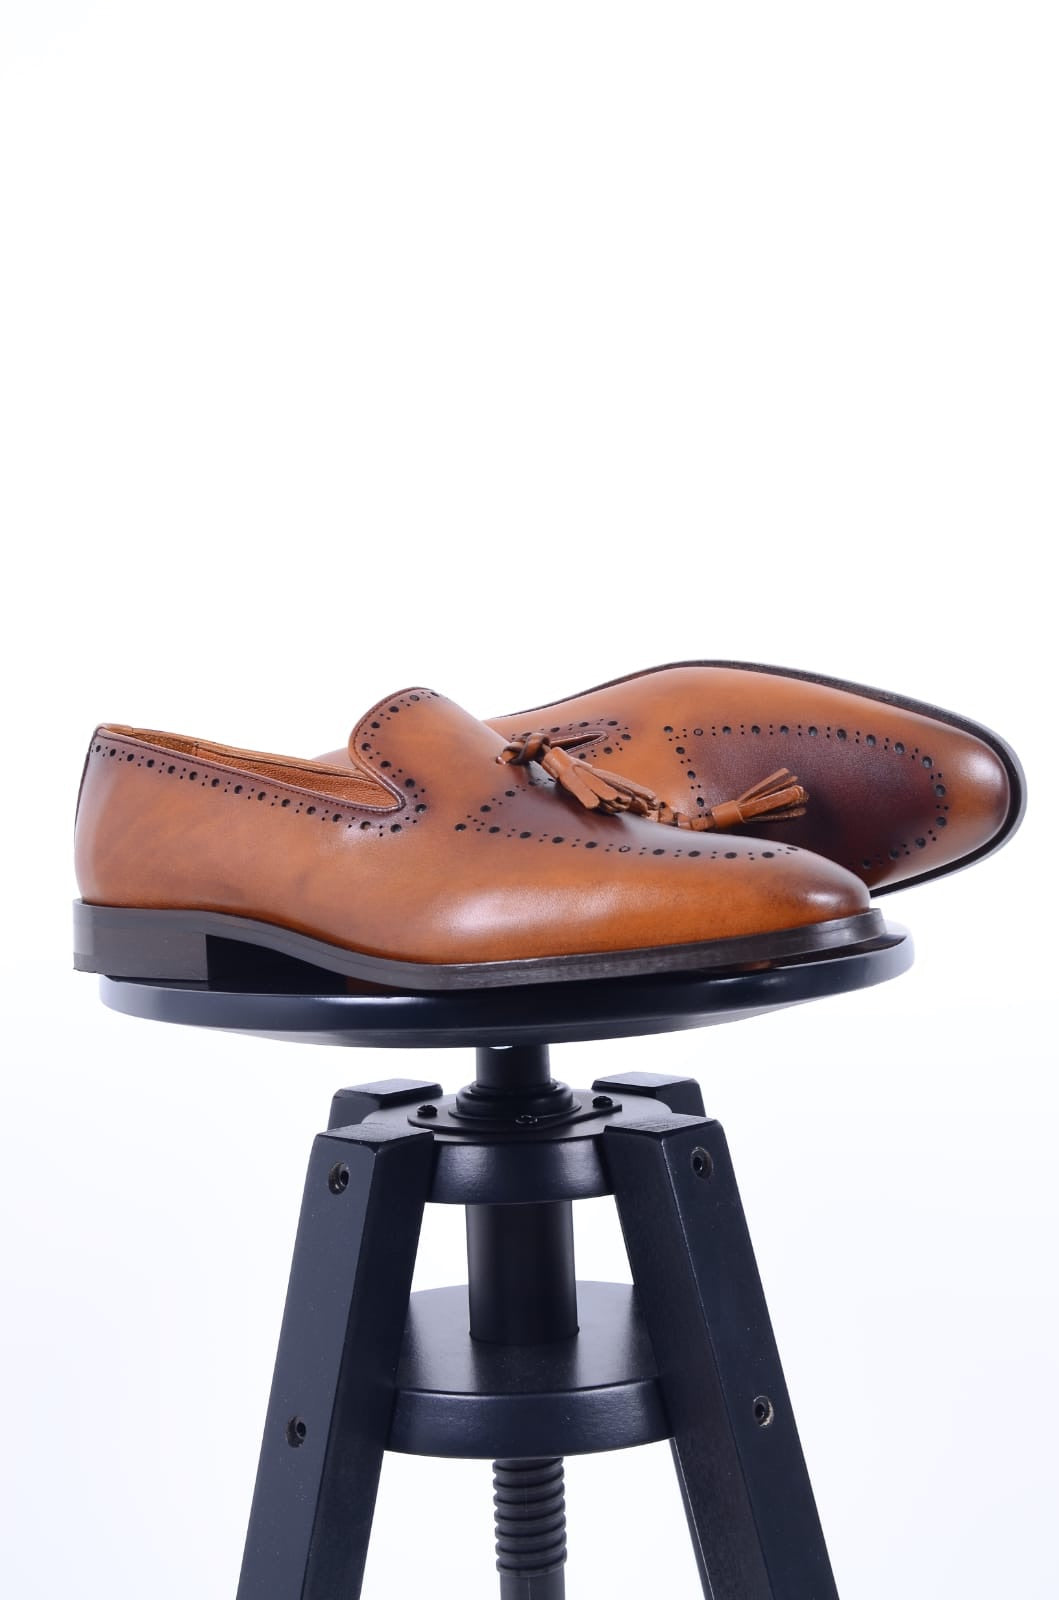 Calf-Leather Loafer Shoes (3 Colors)